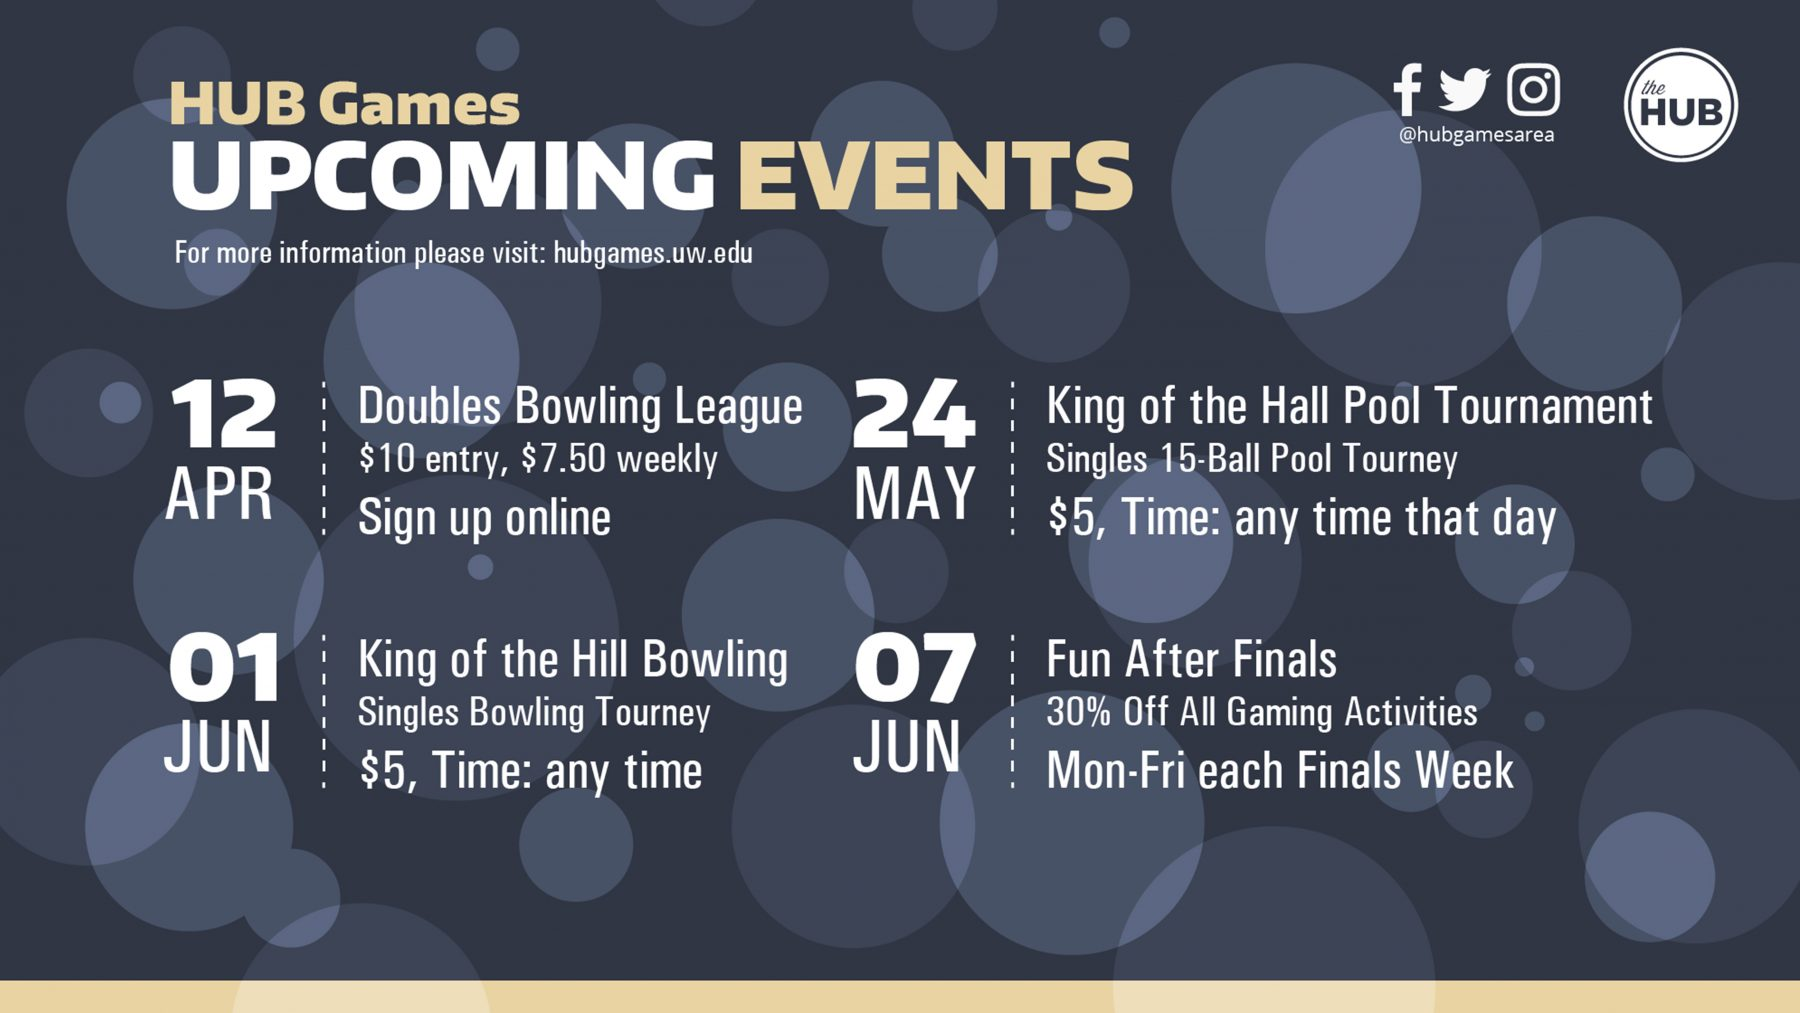 HUB Games Spring Events